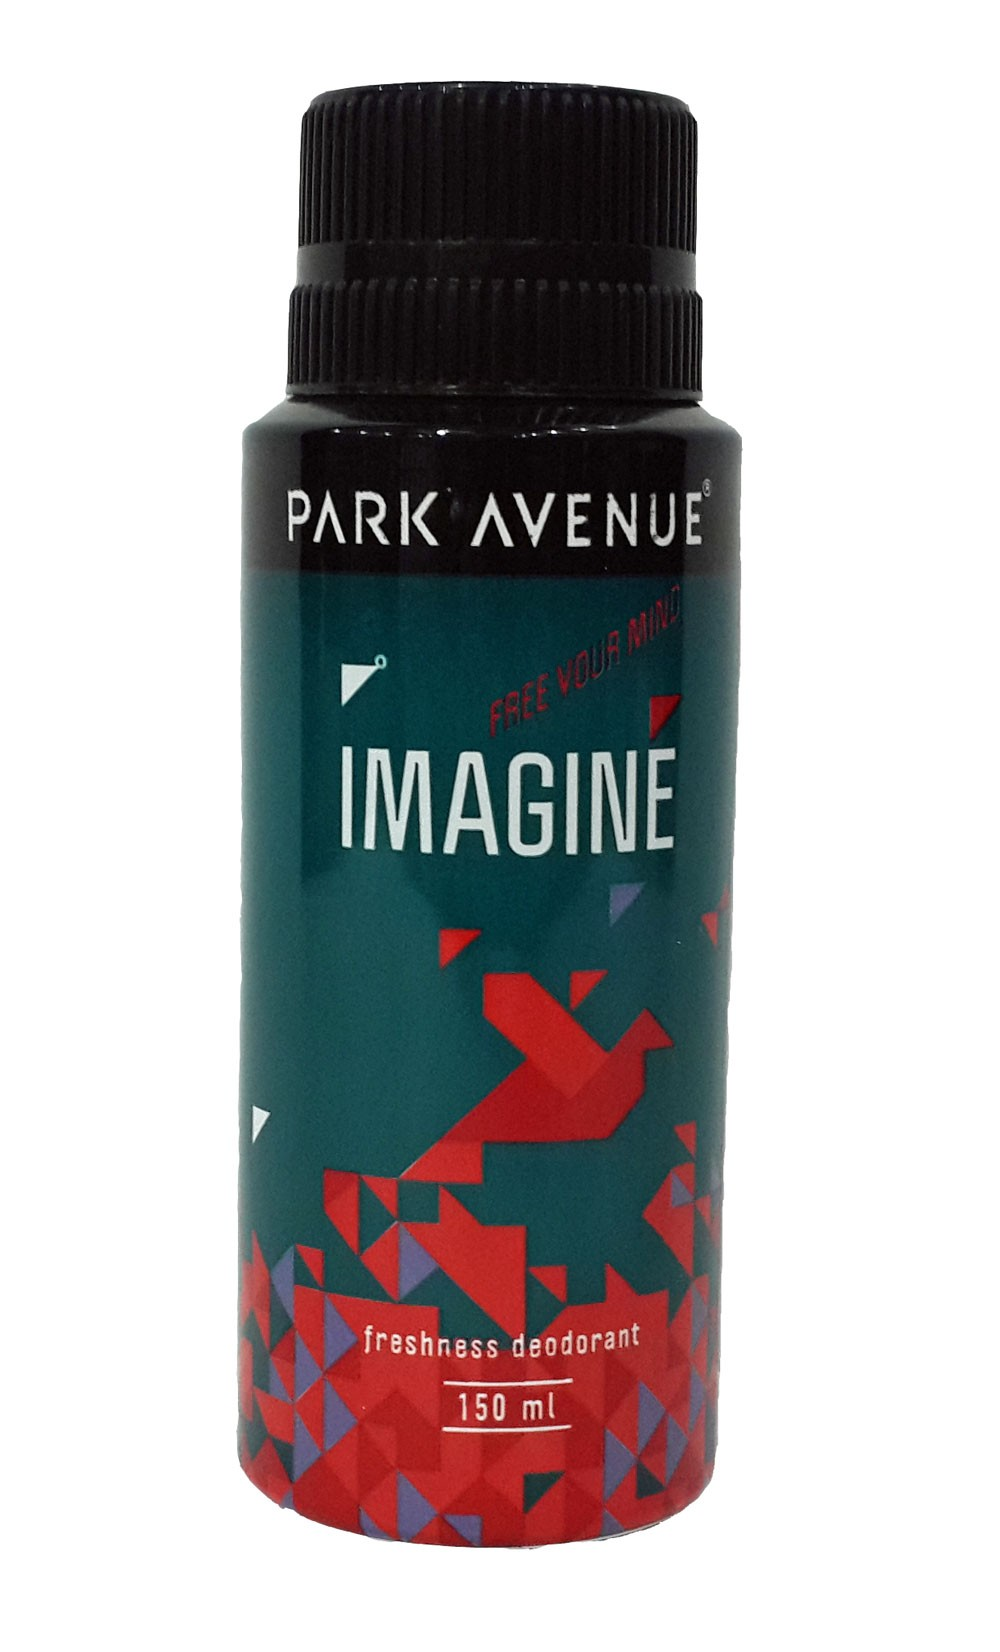 Park Avenue Deo - Imagine 150 ml Packing